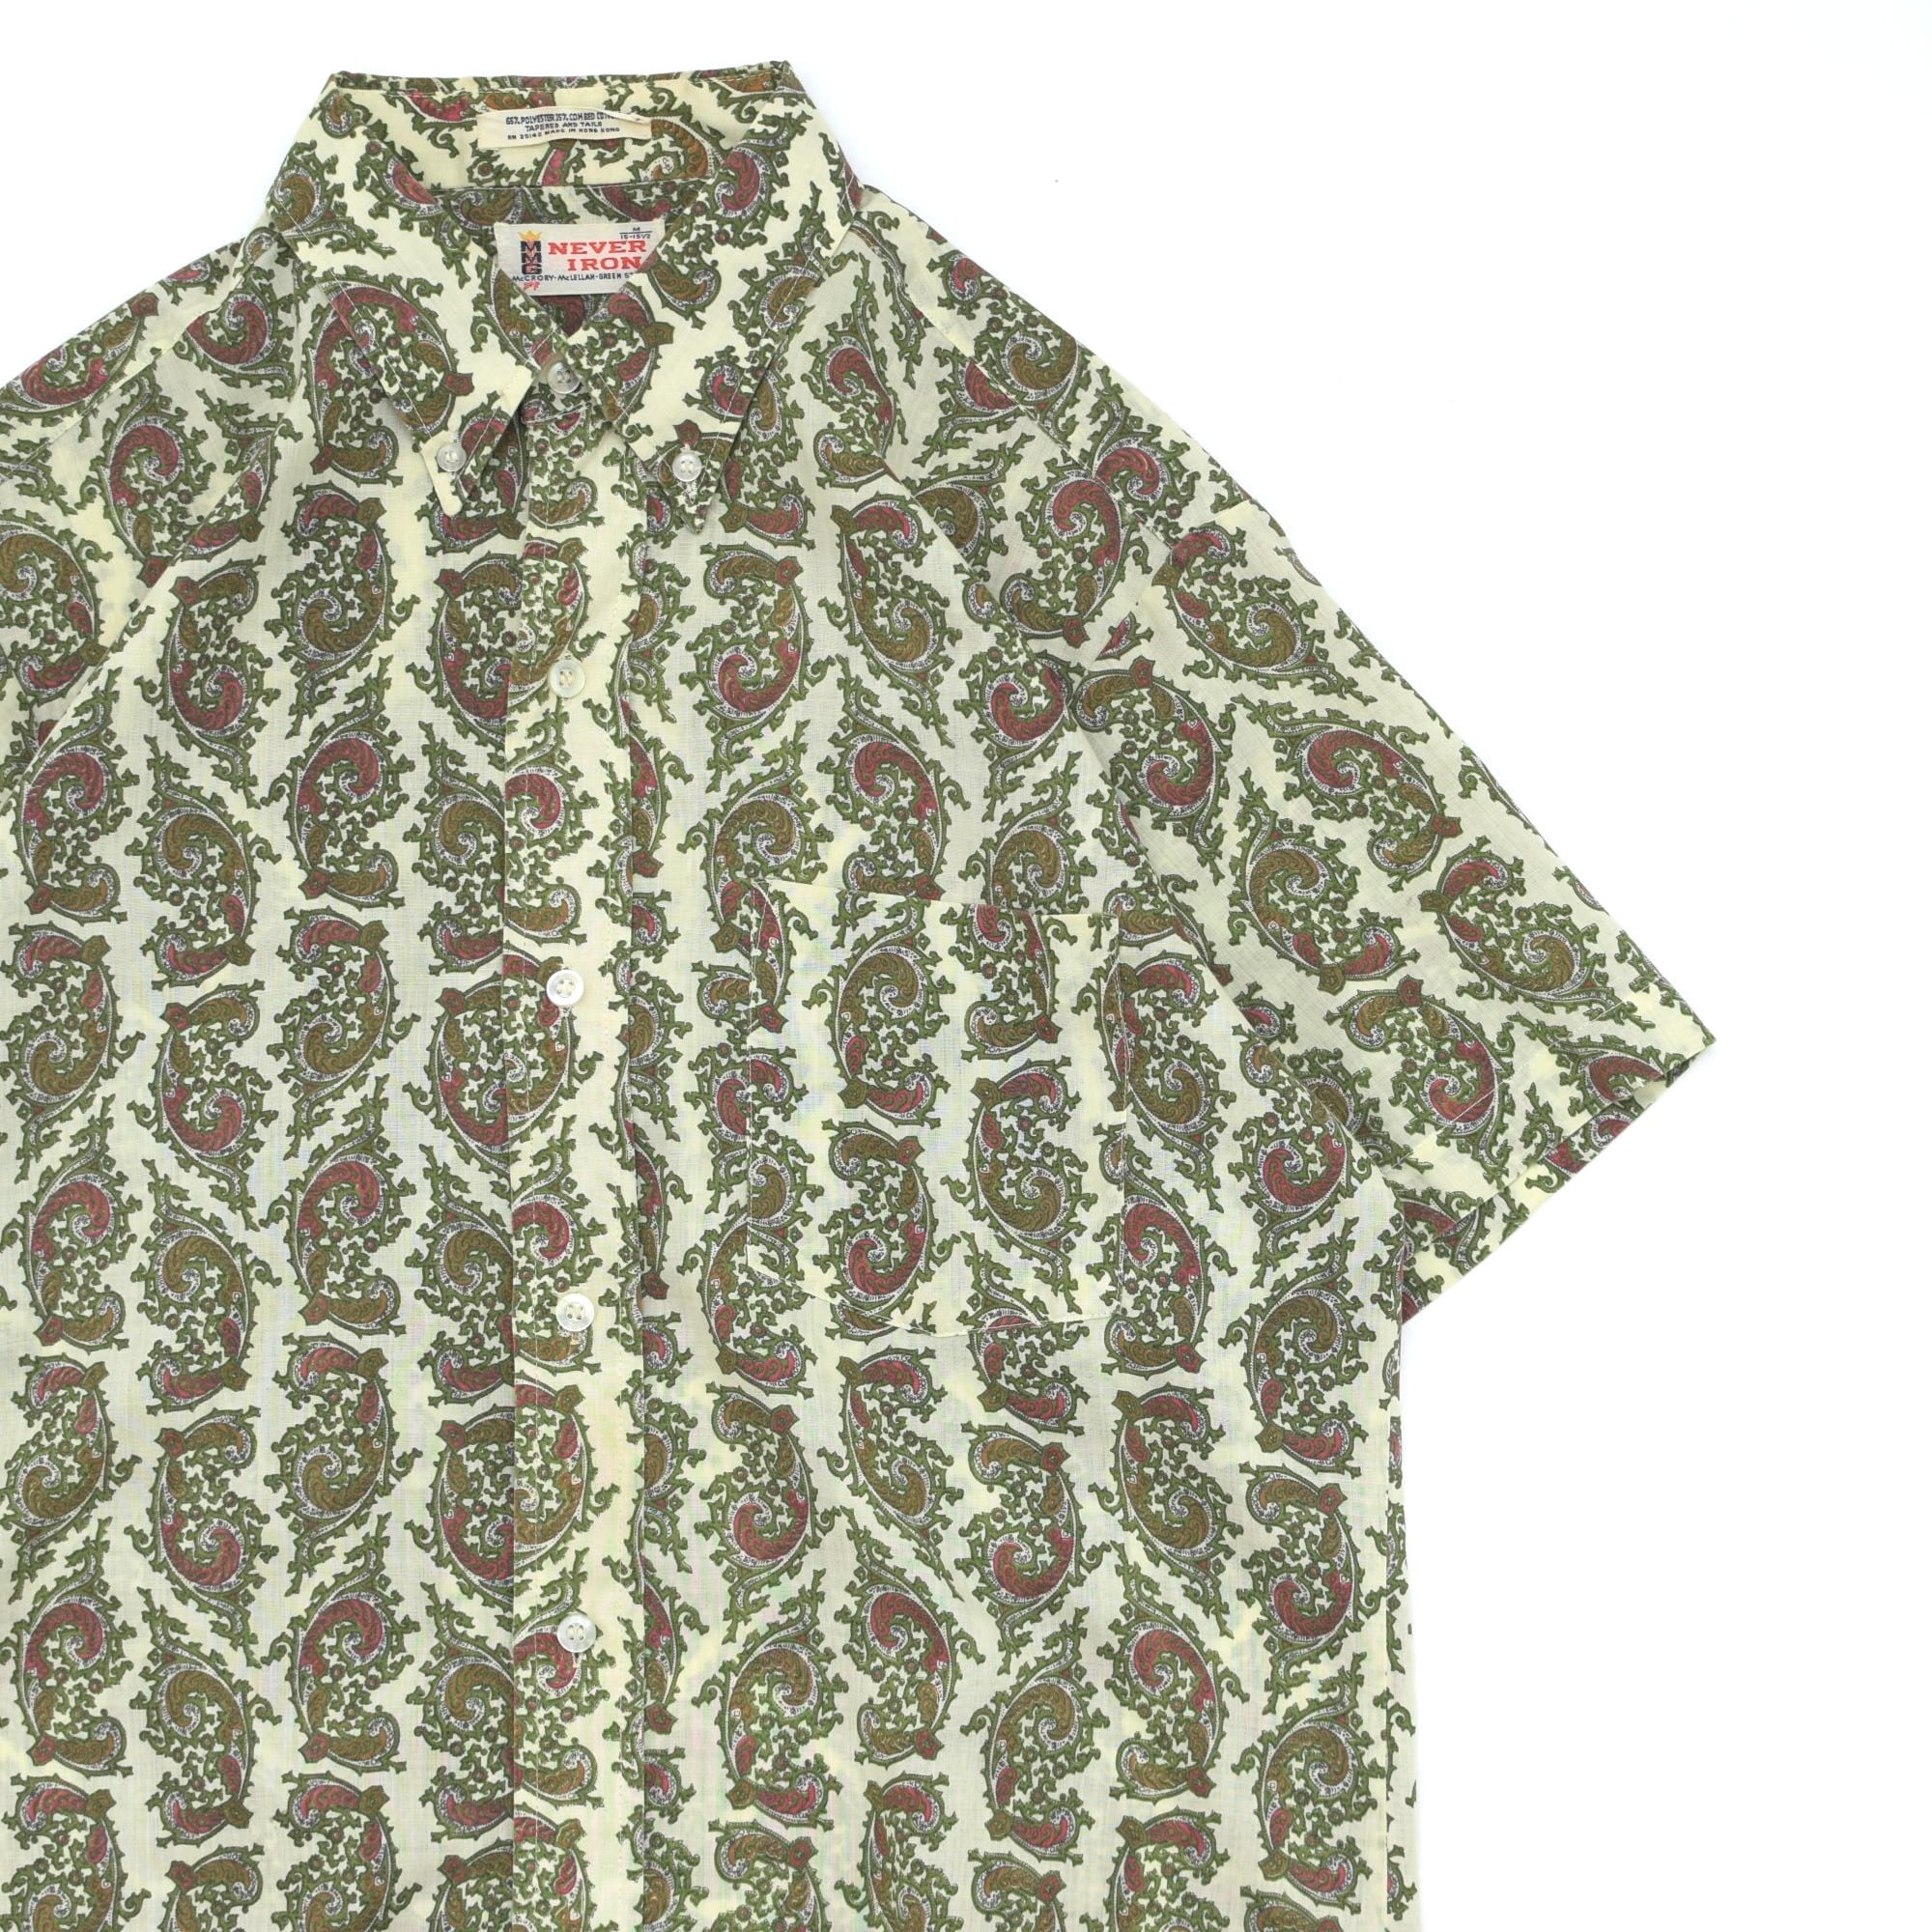 60〜70's MMG McCRORY paisly BD shirt